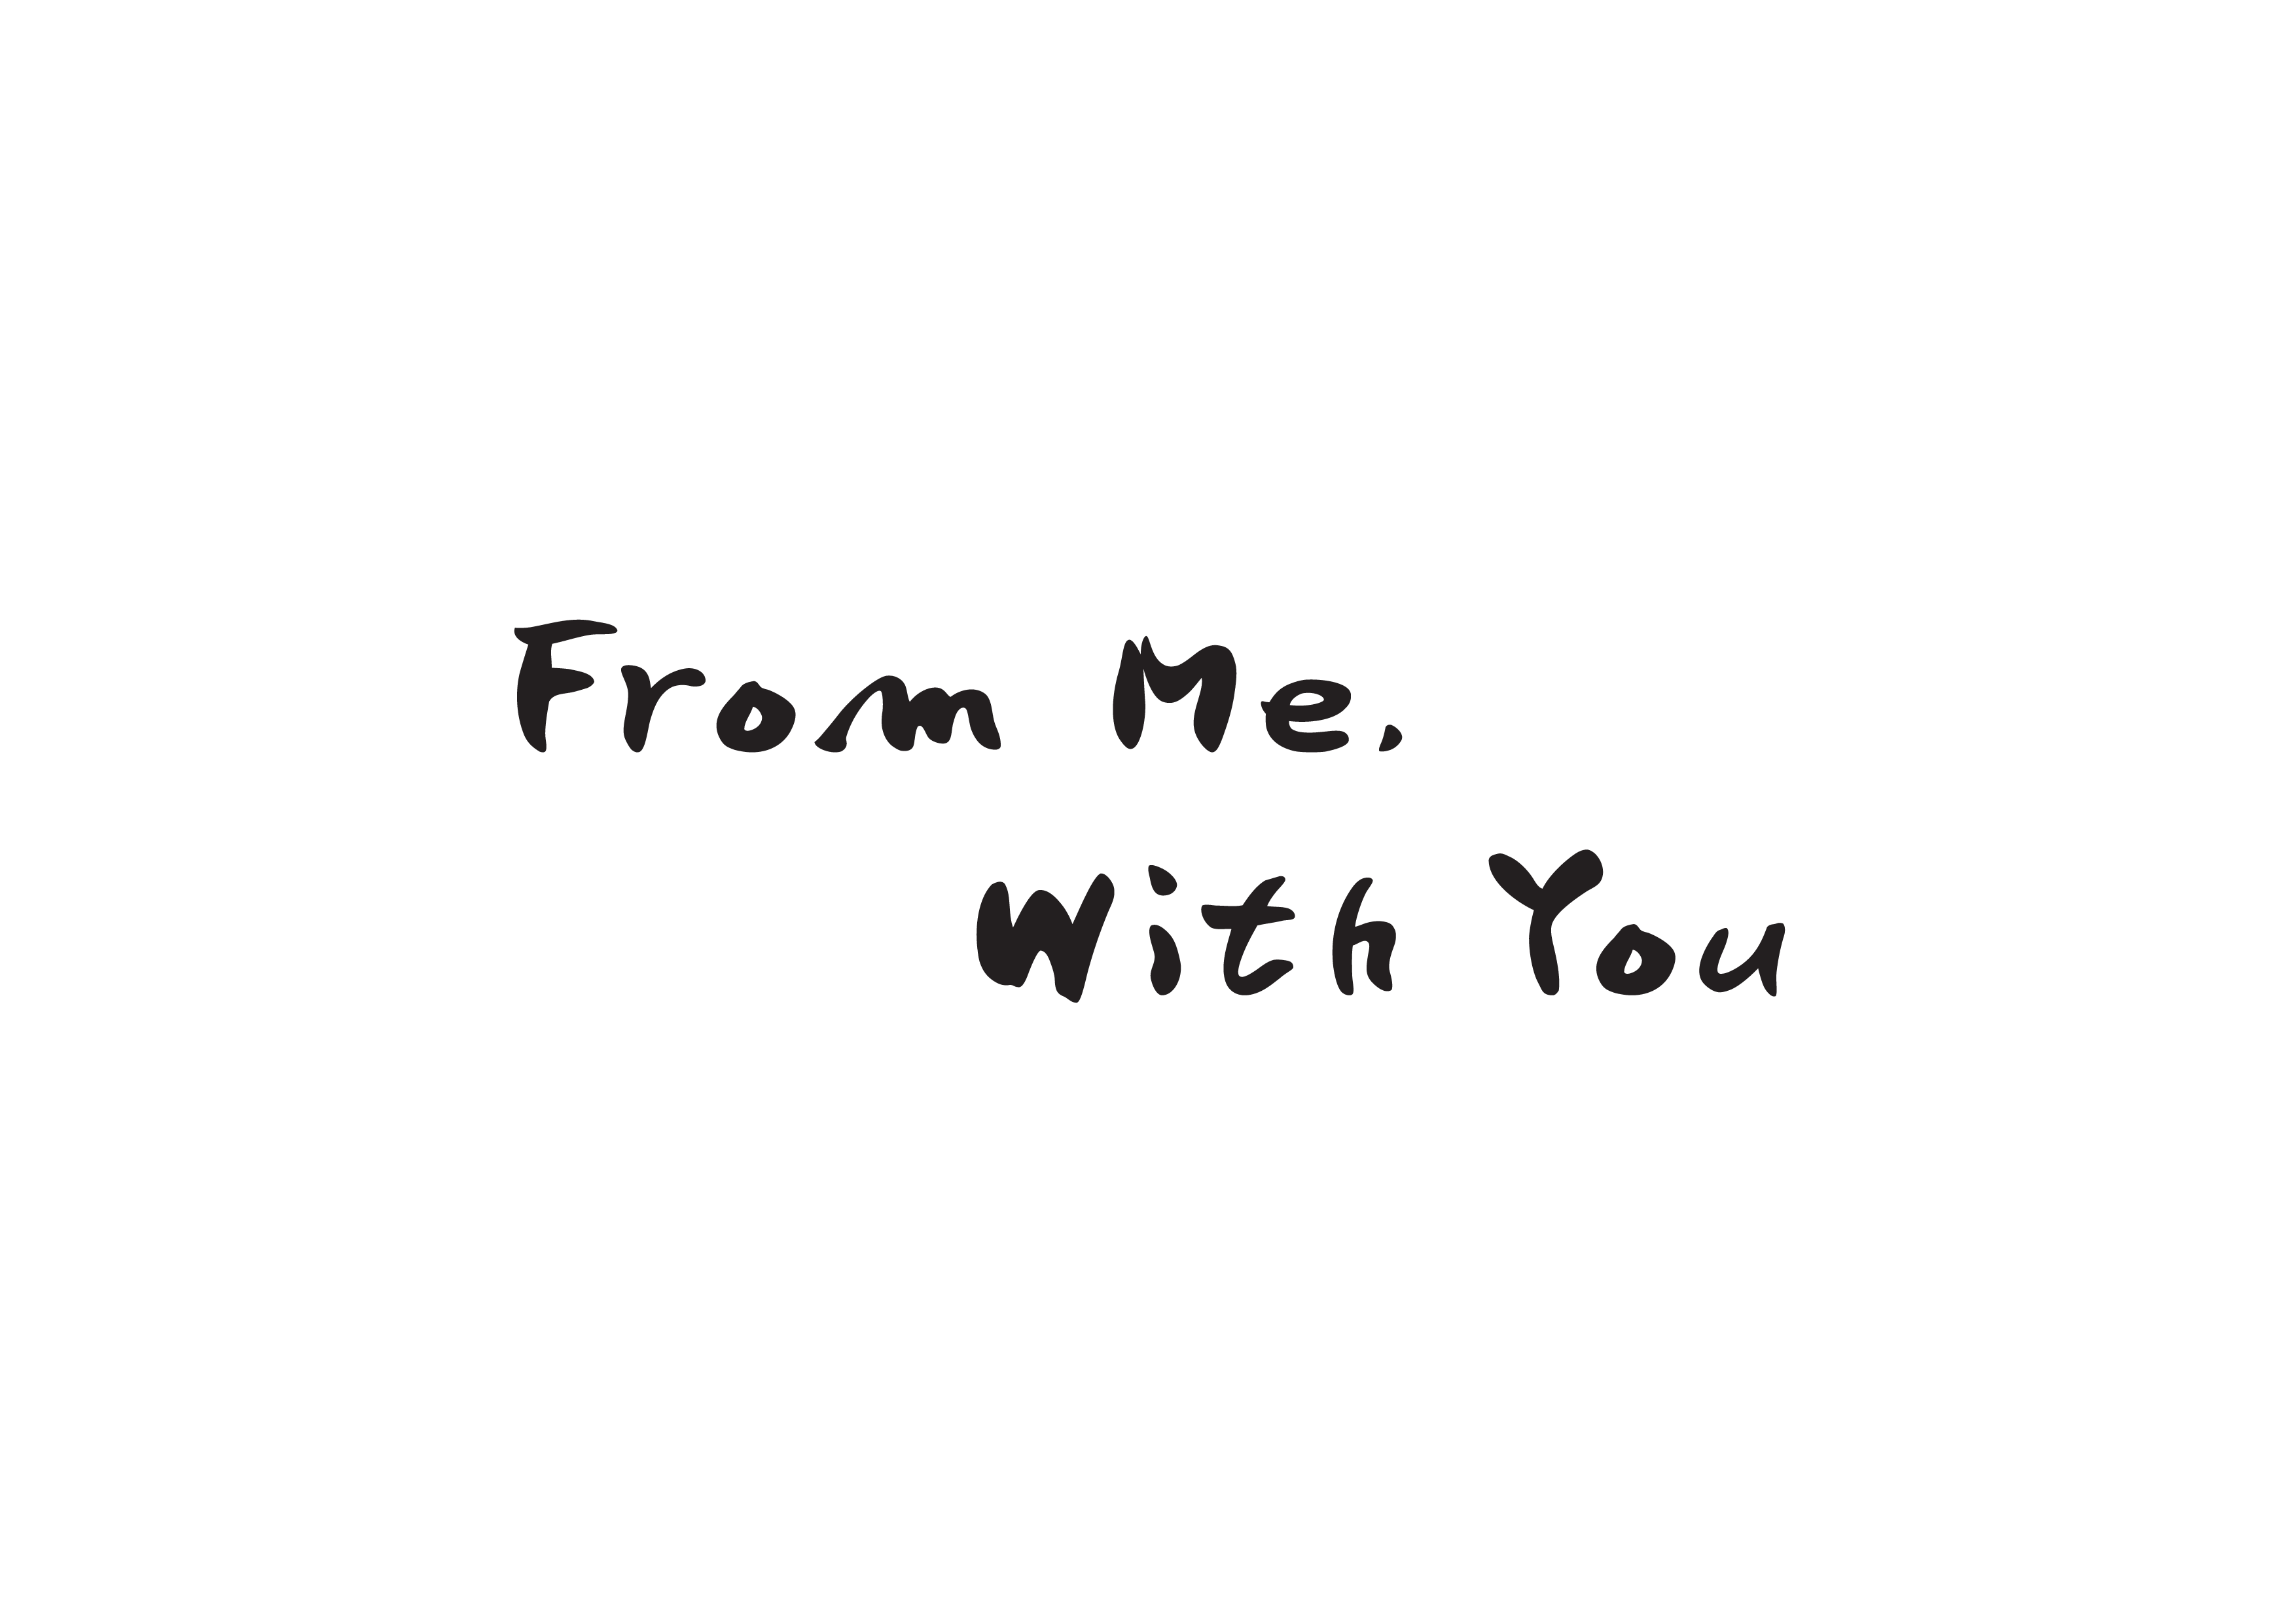 From Me, With You